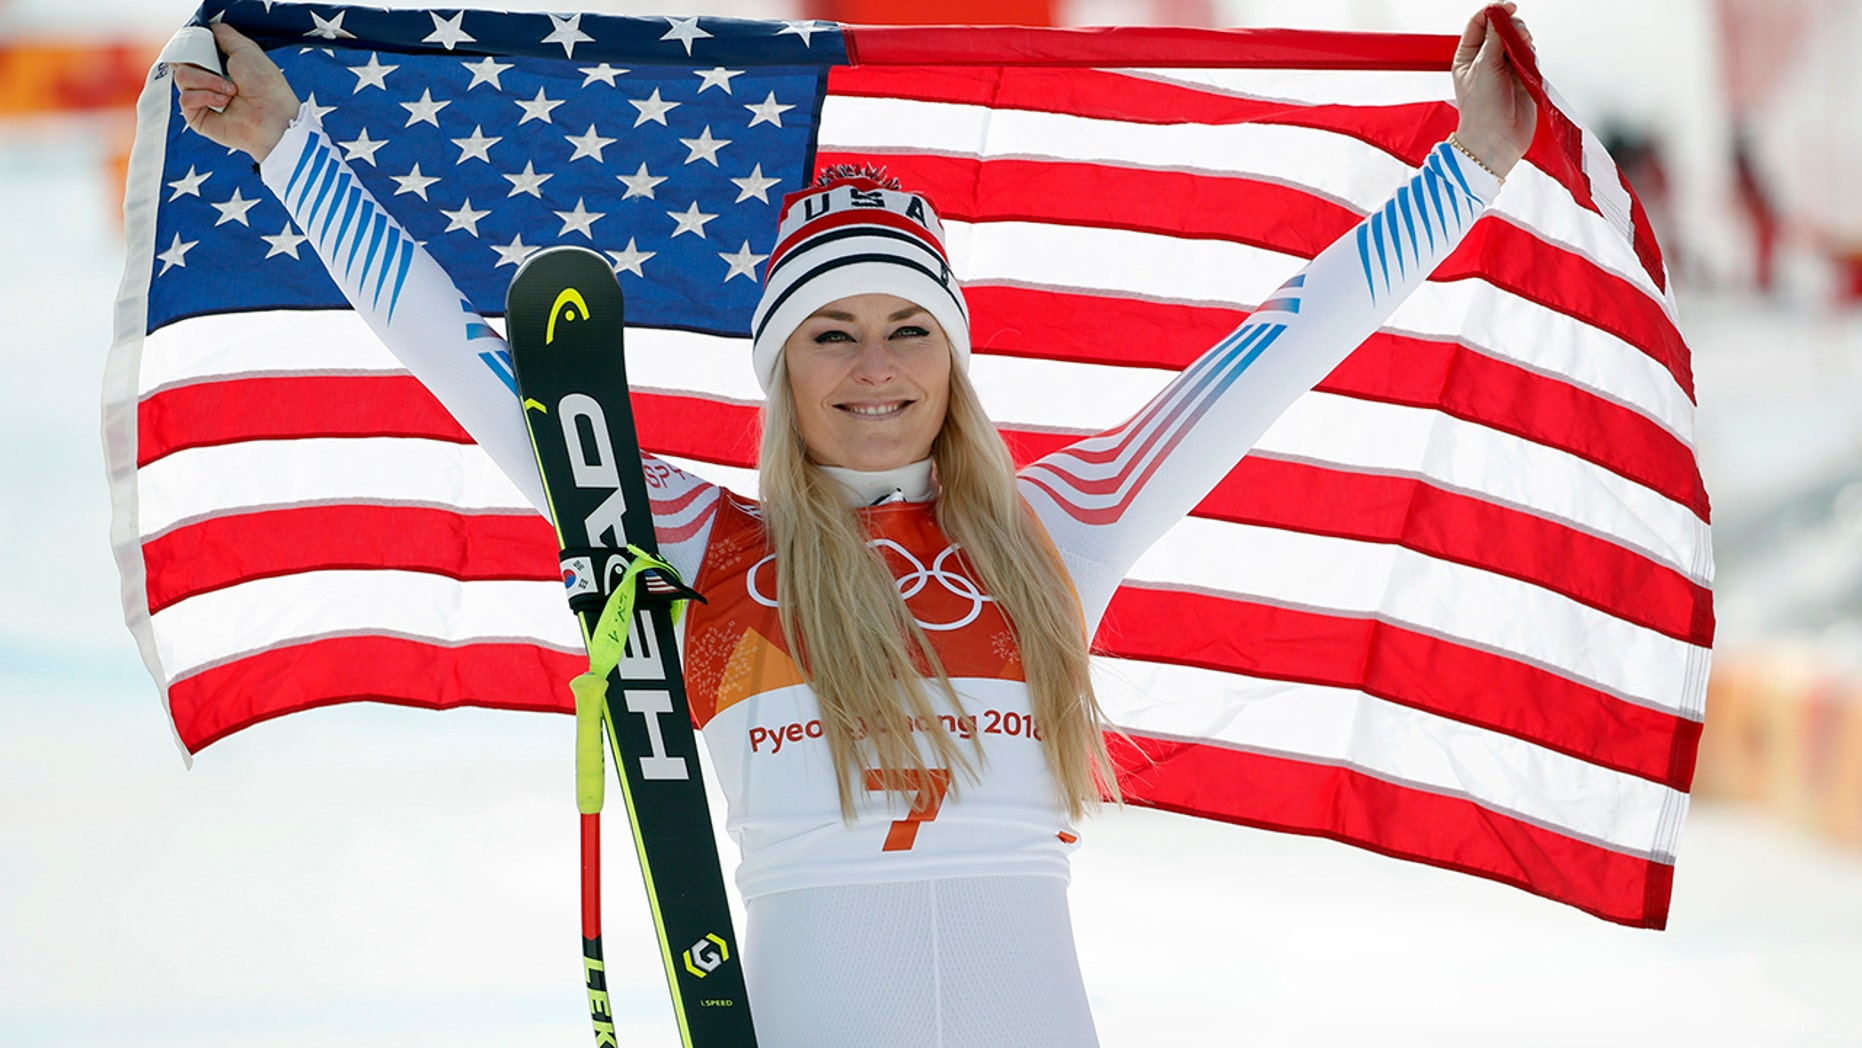 Our Daily Planet talks climate change with Lindsey Vonn